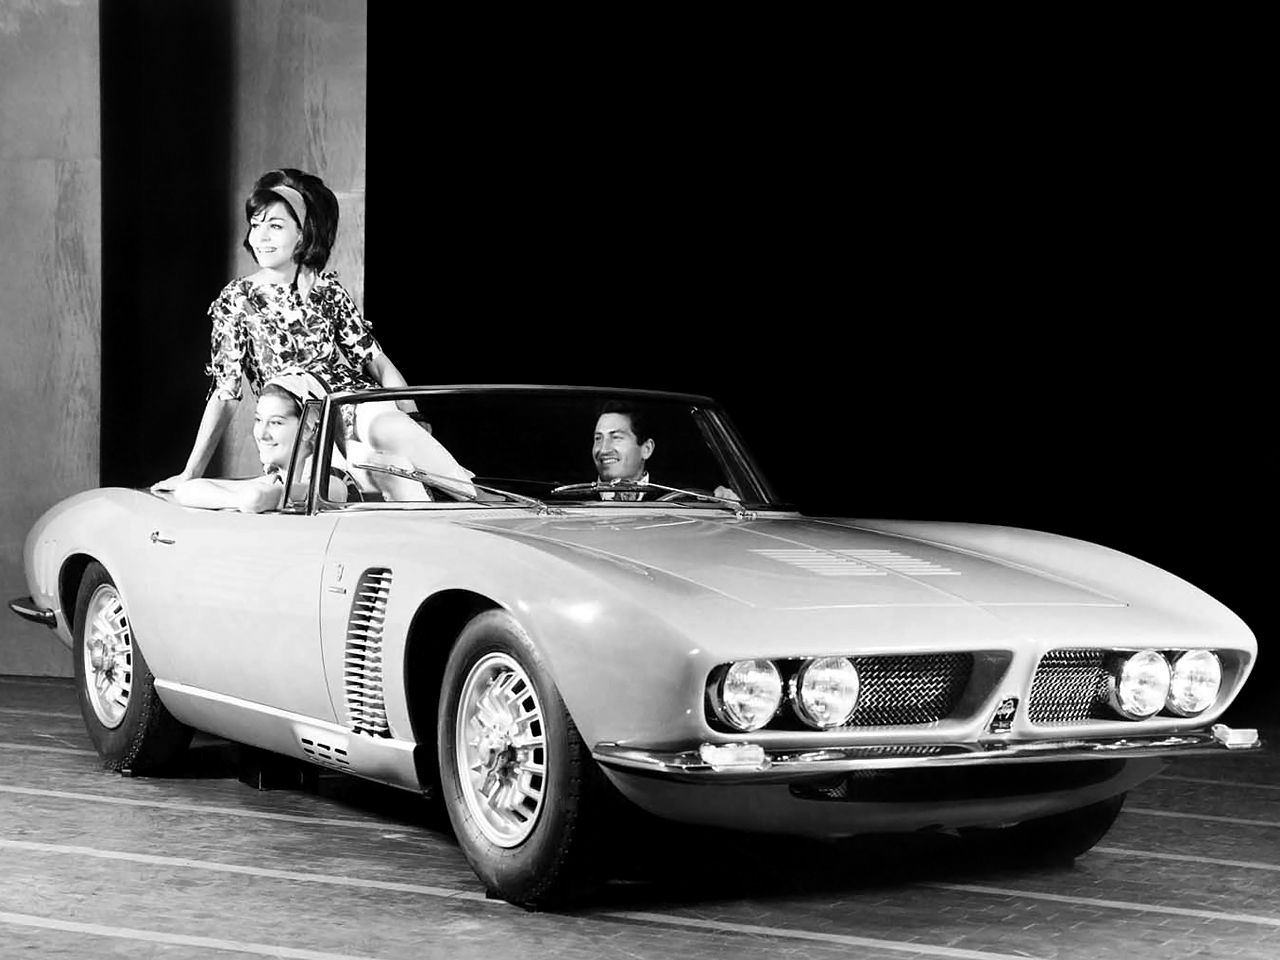 The Iso Grifo A3/L was aimed at a quite different type of buyer than Bizzarini's Iso Grifo A3 Competizione. (Picture courtesy carstyling.ru).